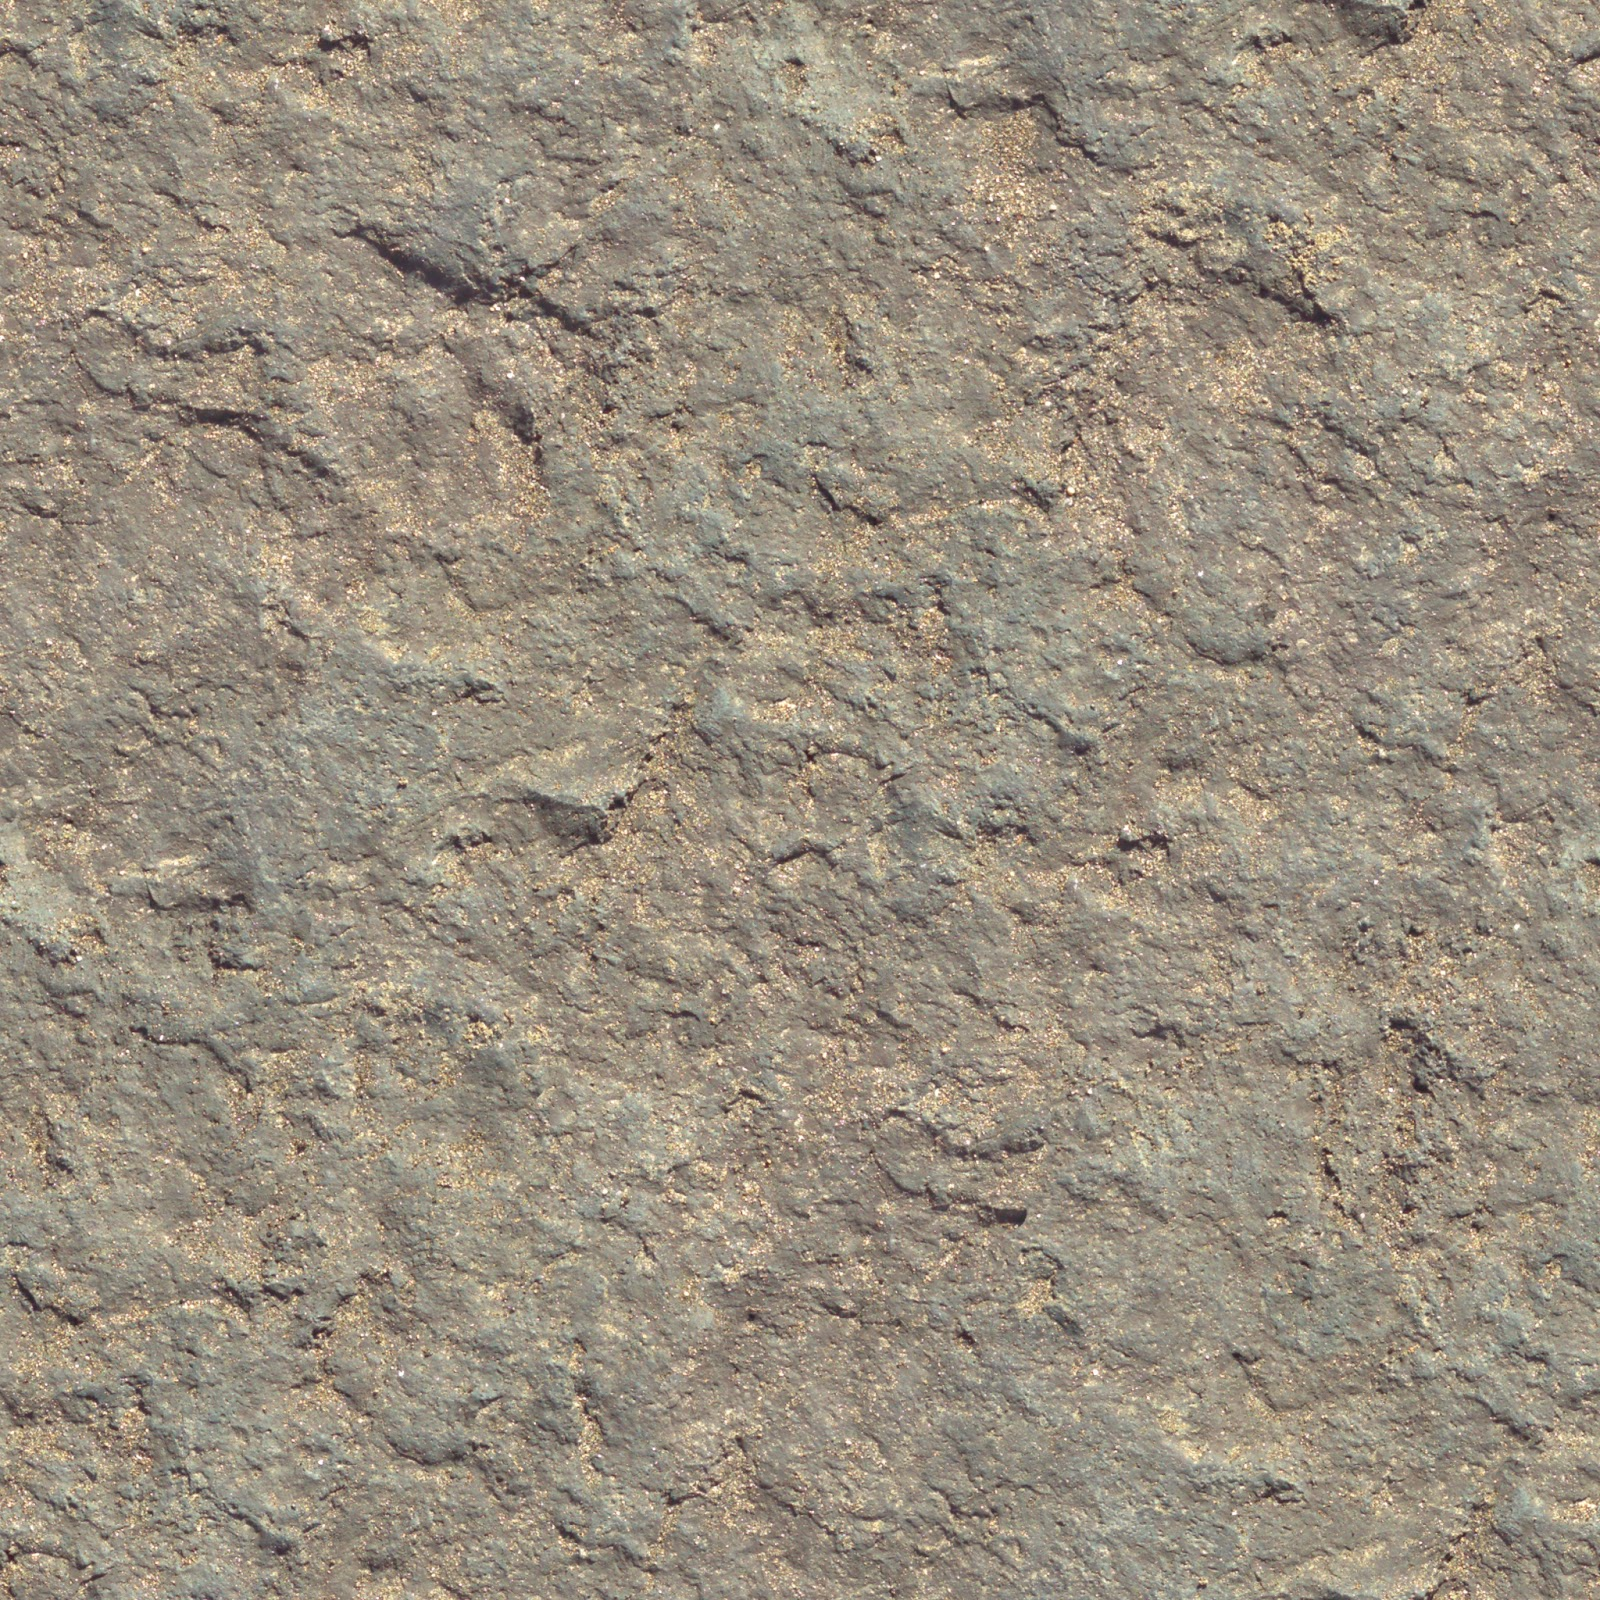 High Resolution Seamless Textures: Mountain brown rock ...